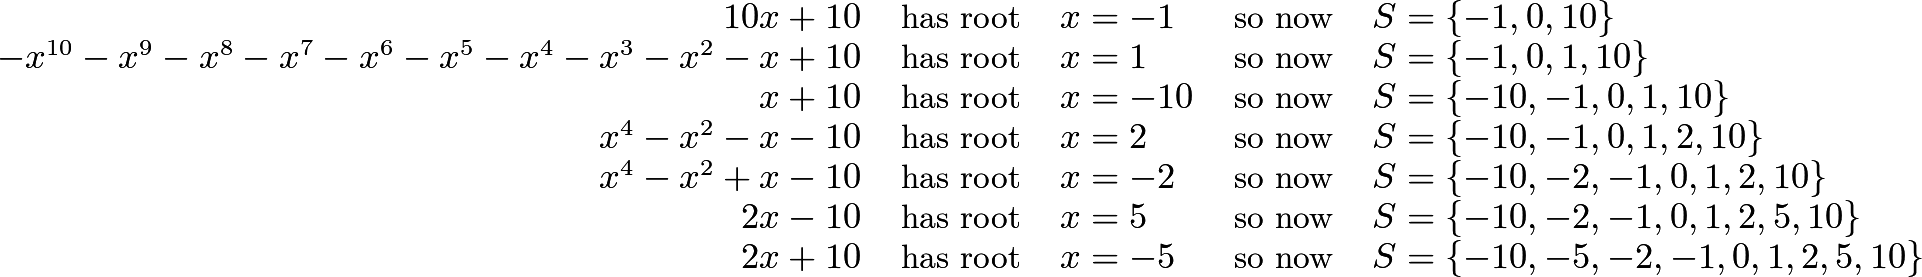 \[\begin{tabular}{r c l c l} \(10x+10\) & has root & \(x=-1\) & so now & \(S=\{-1,0,10\}\) \\ \(-x^{10}-x^9-x^8-x^7-x^6-x^5-x^4-x^3-x^2-x+10\) & has root & \(x=1\) & so now & \(S=\{-1,0,1,10\}\) \\ \(x+10\) & has root & \(x=-10\) & so now & \(S=\{-10,-1,0,1,10\}\) \\ \(x^4-x^2-x-10\) & has root & \(x=2\) & so now & \(S=\{-10,-1,0,1,2,10\}\) \\ \(x^4-x^2+x-10\) & has root & \(x=-2\) & so now & \(S=\{-10,-2,-1,0,1,2,10\}\) \\ \(2x-10\) & has root & \(x=5\) & so now & \(S=\{-10,-2,-1,0,1,2,5,10\}\) \\ \(2x+10\) & has root & \(x=-5\) & so now & \(S=\{-10,-5,-2,-1,0,1,2,5,10\}\) \end{tabular}\]